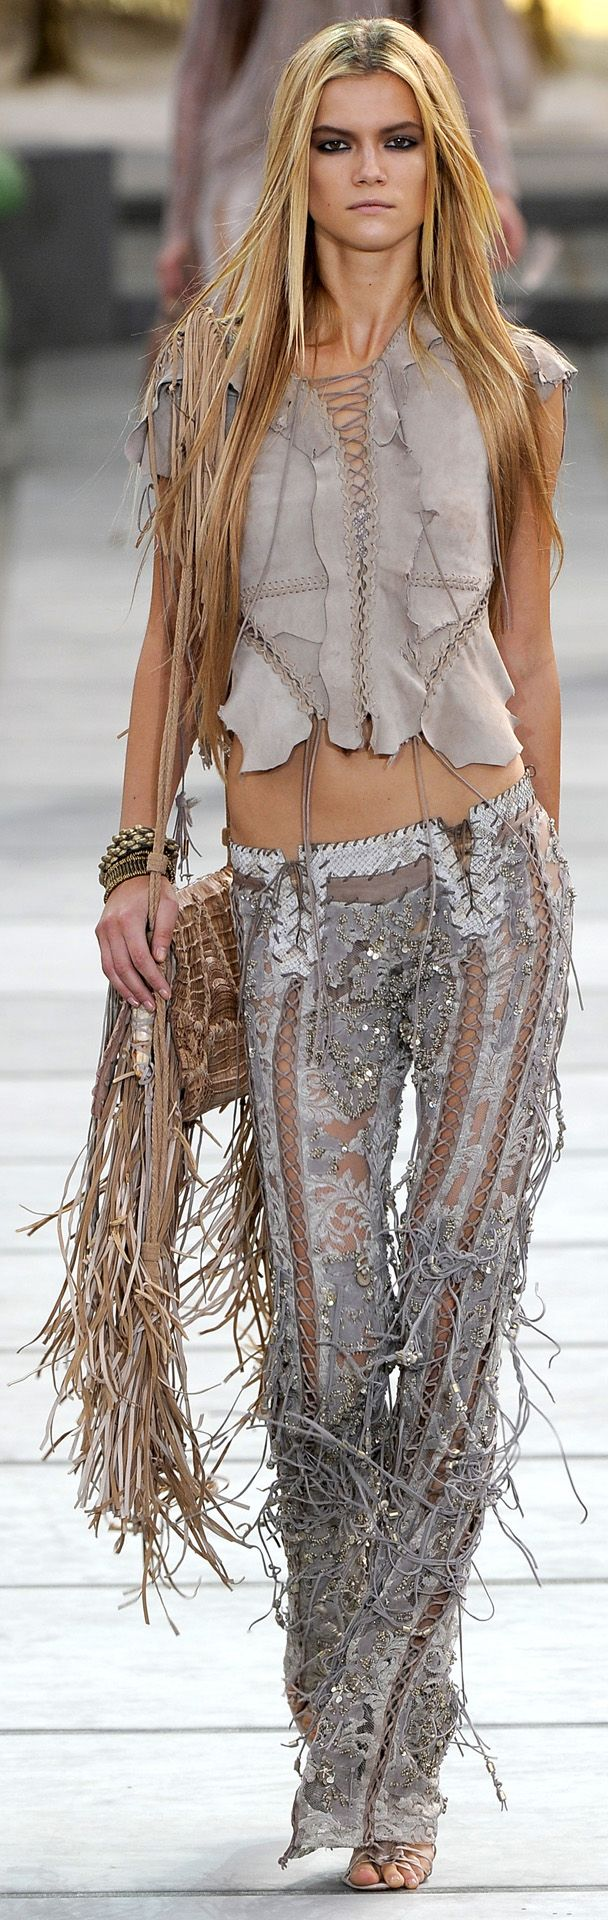 Native American Influence - Cavalli